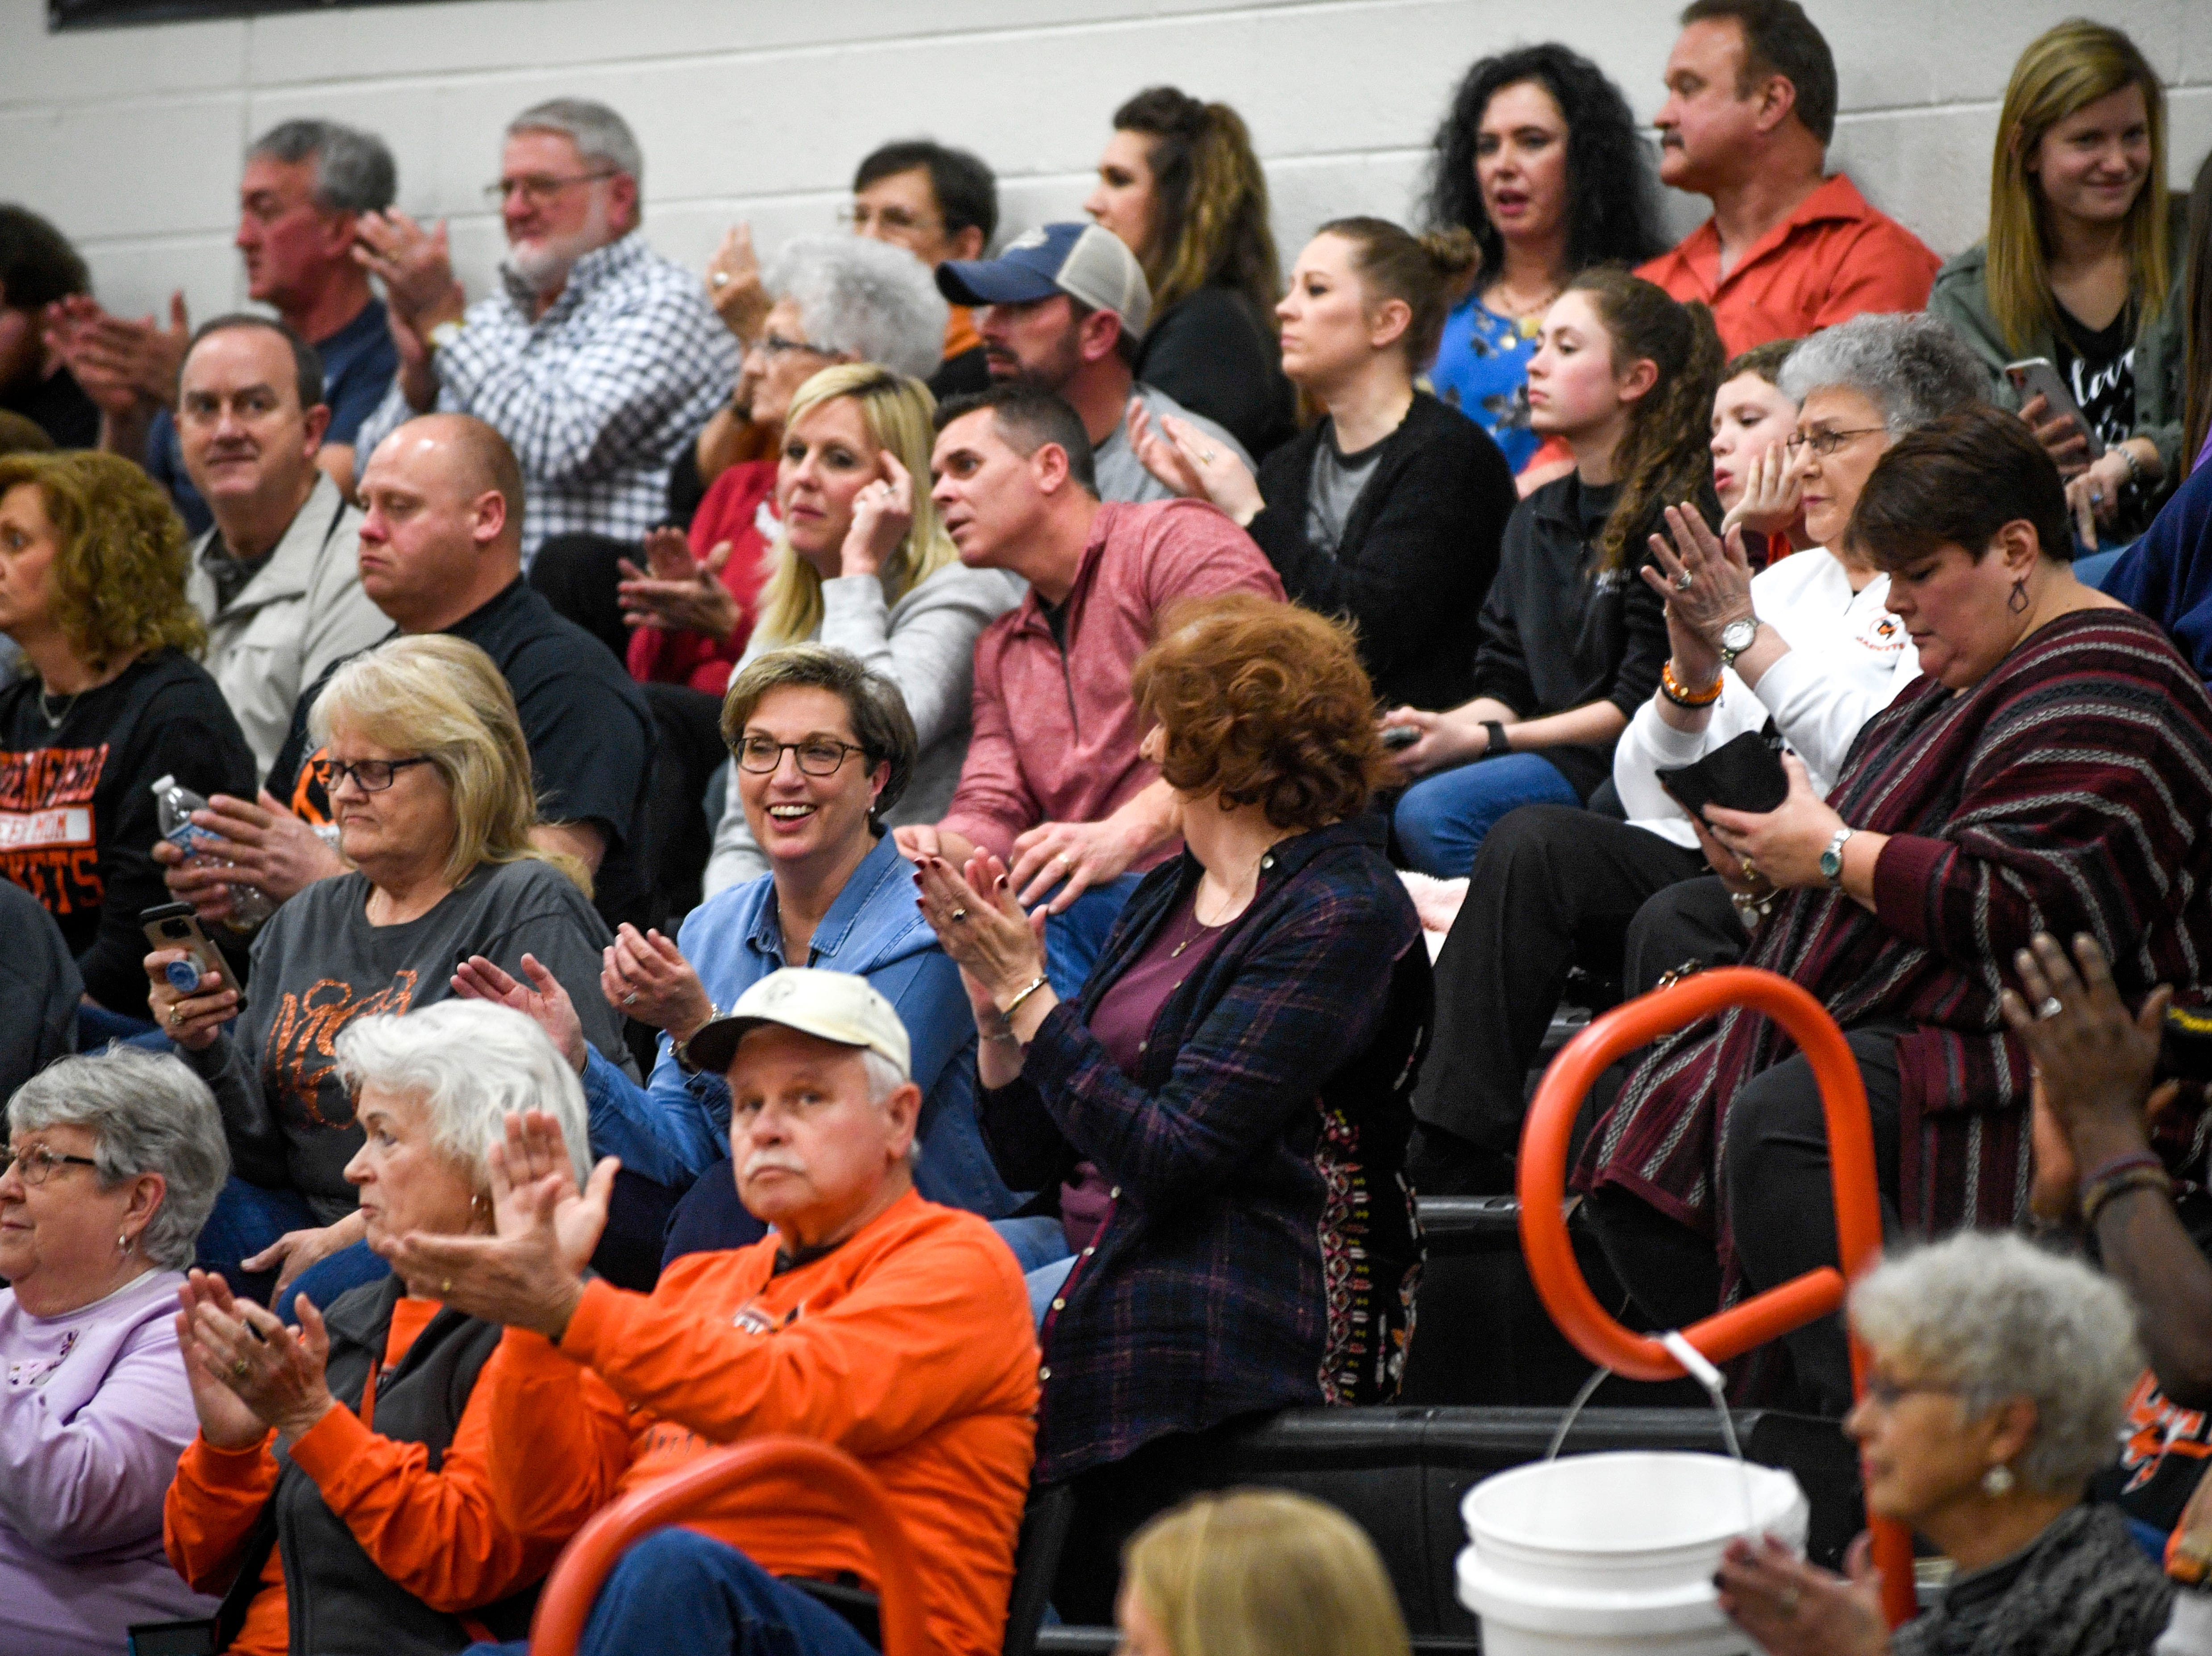 Greenfield fans clap for their team in a TSSAA basketball game between Greenfield and Greason at Greenfield School in Greenfield, Tenn., on Friday, Jan. 25, 2019.